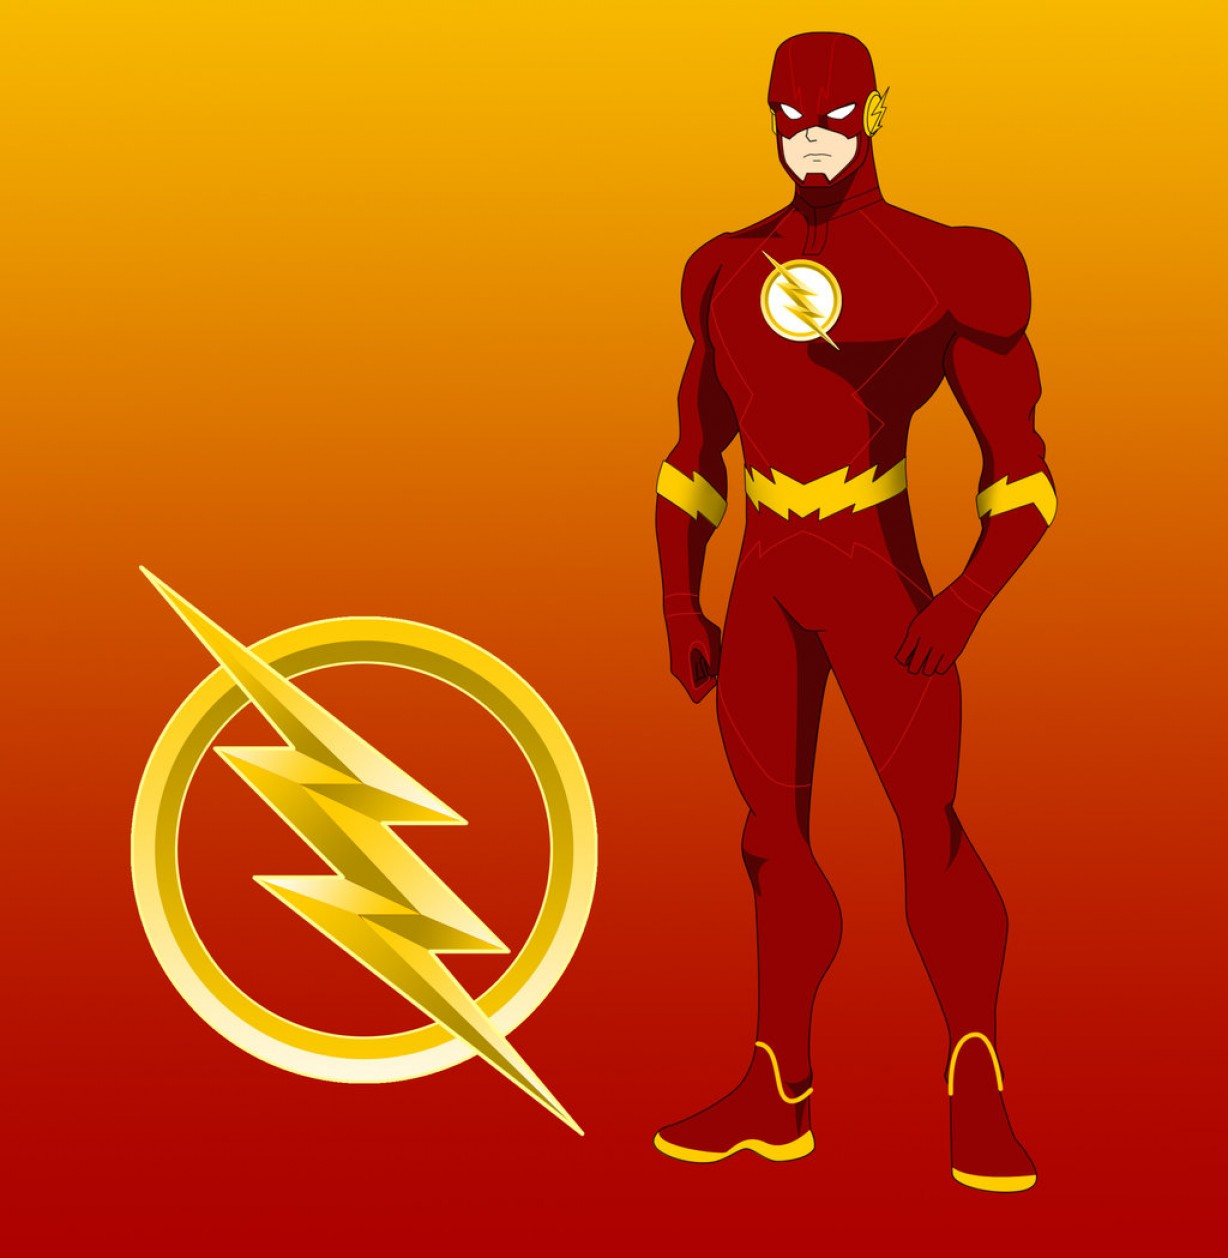 Flash Superhero Logo Vector: The Dc Project Barry Allen The Flash